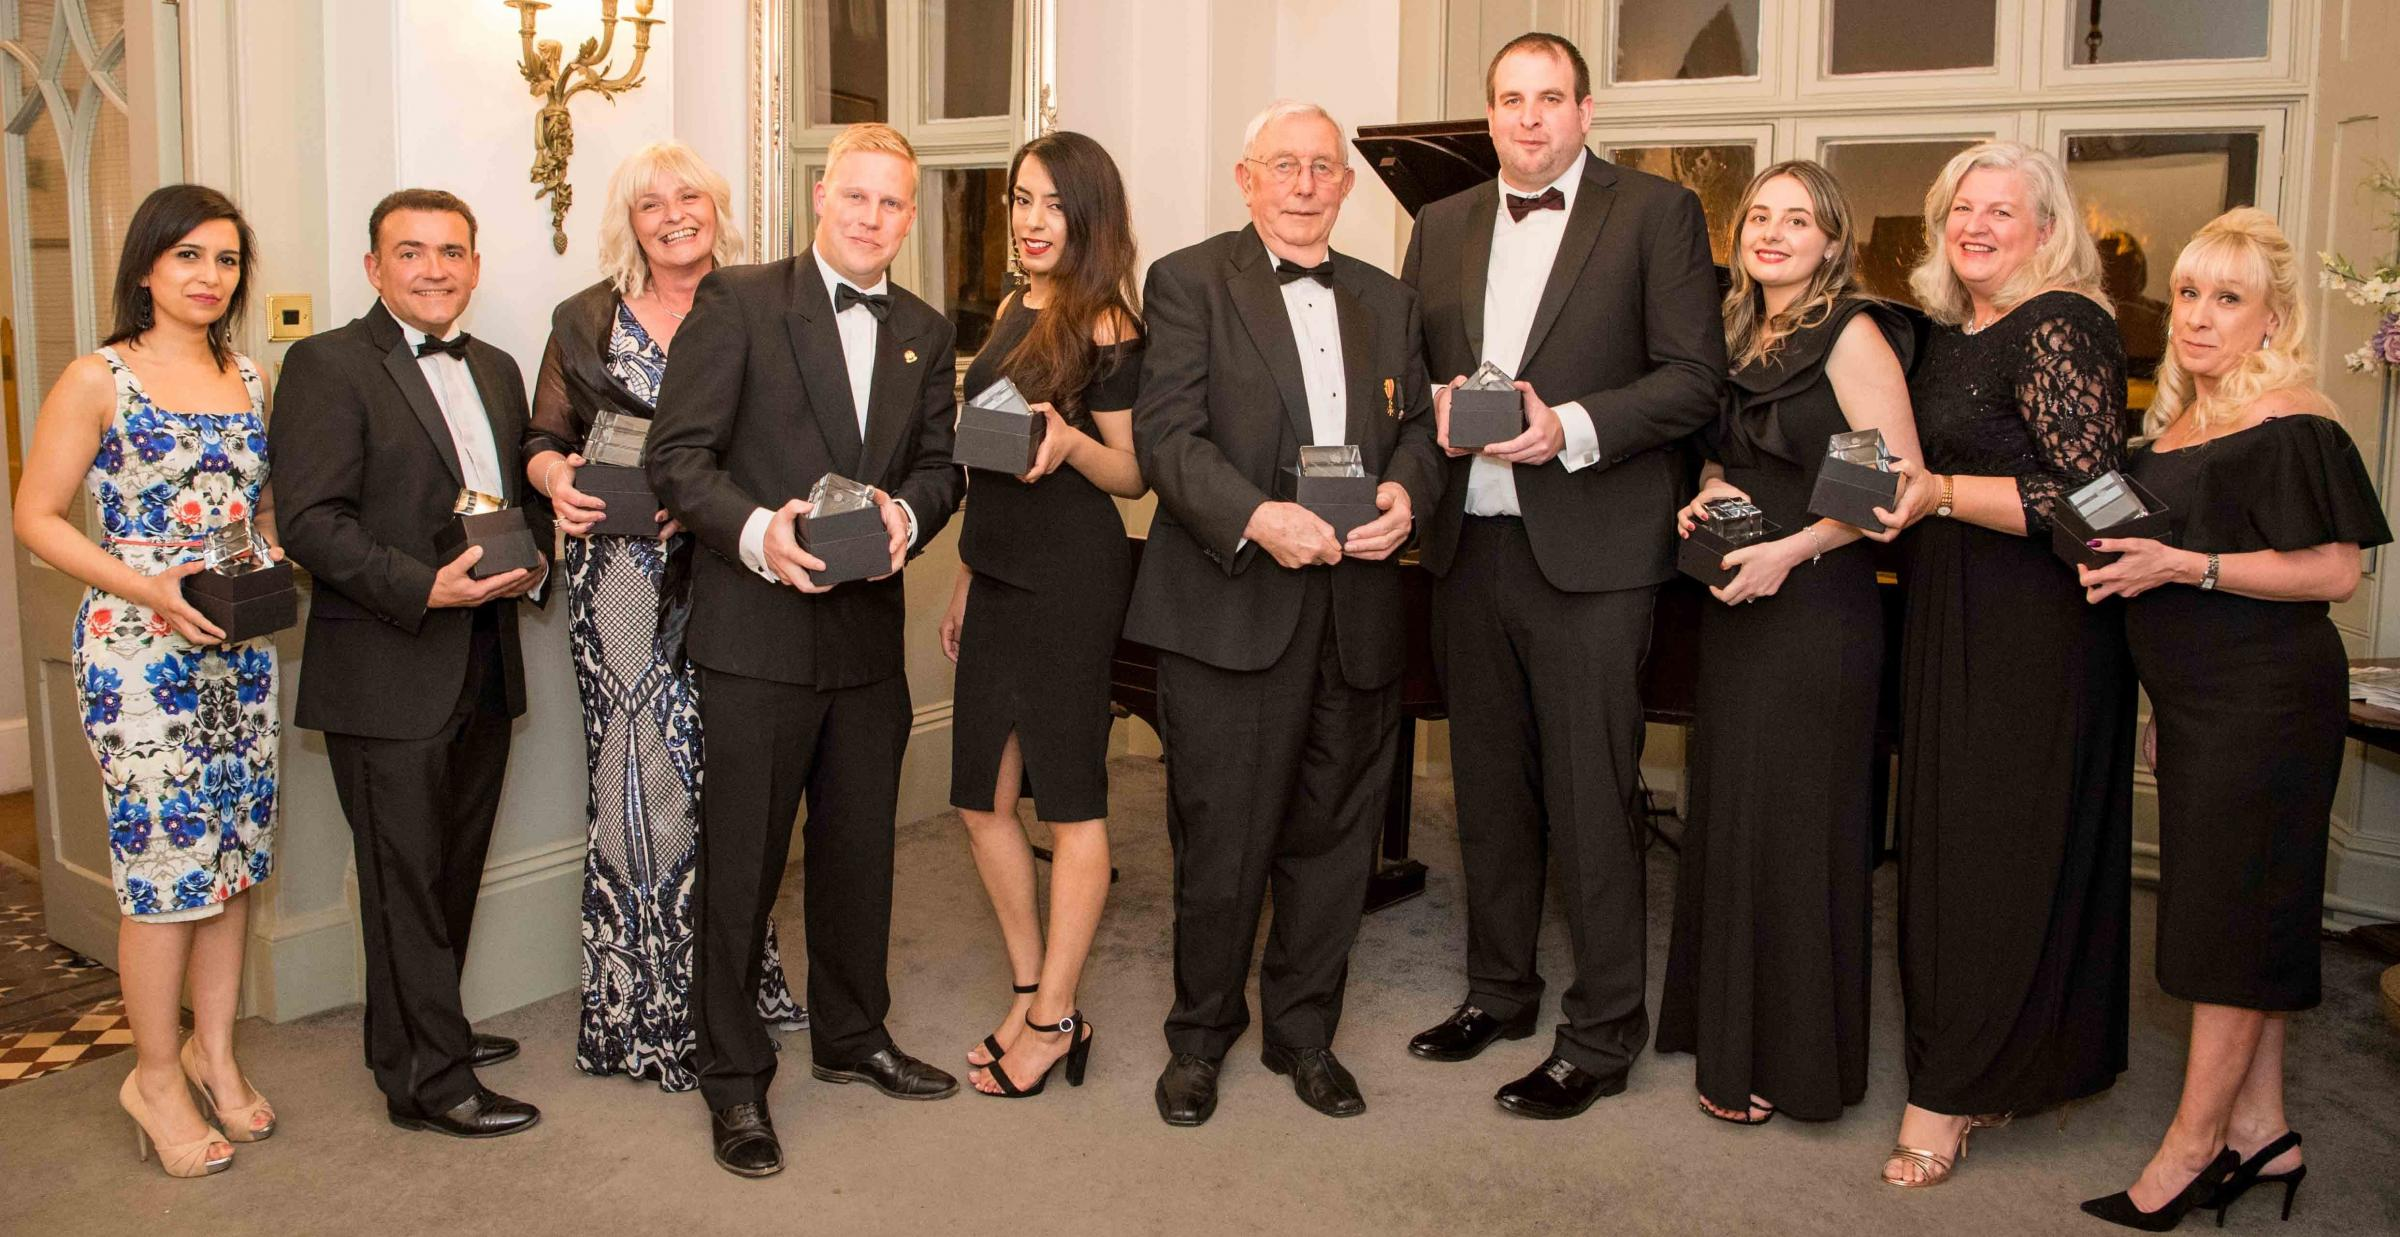 AWARDS: All the winners from the WLS Awards. Pic. FT Images